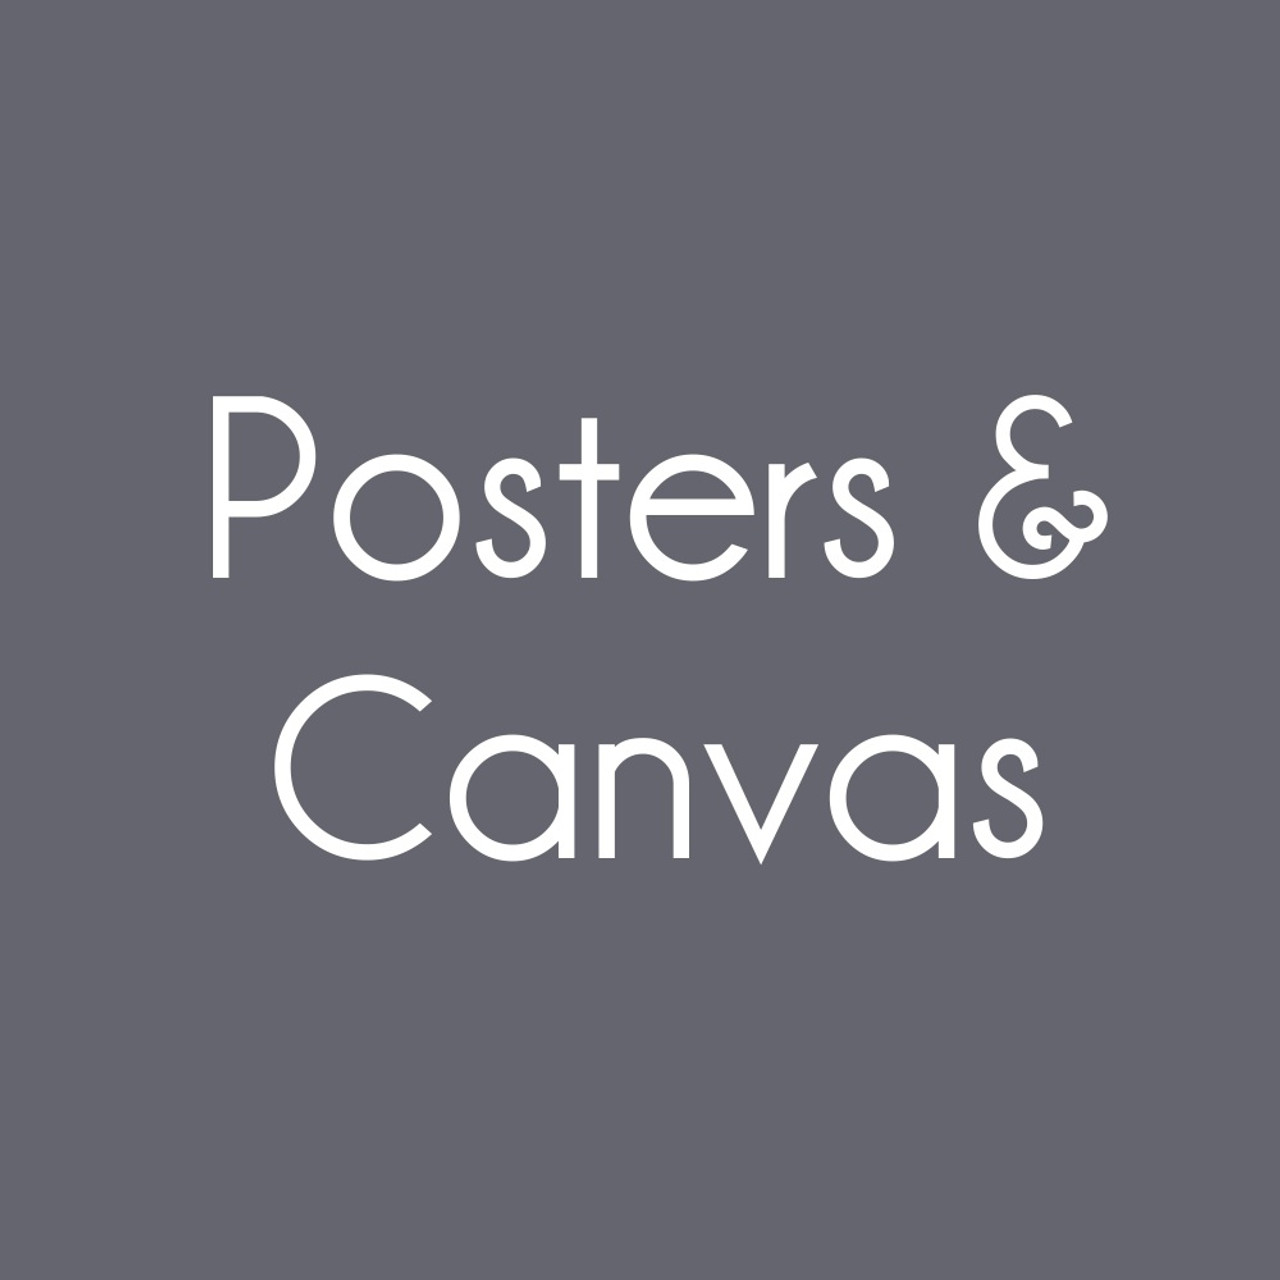 Posters & Canvas